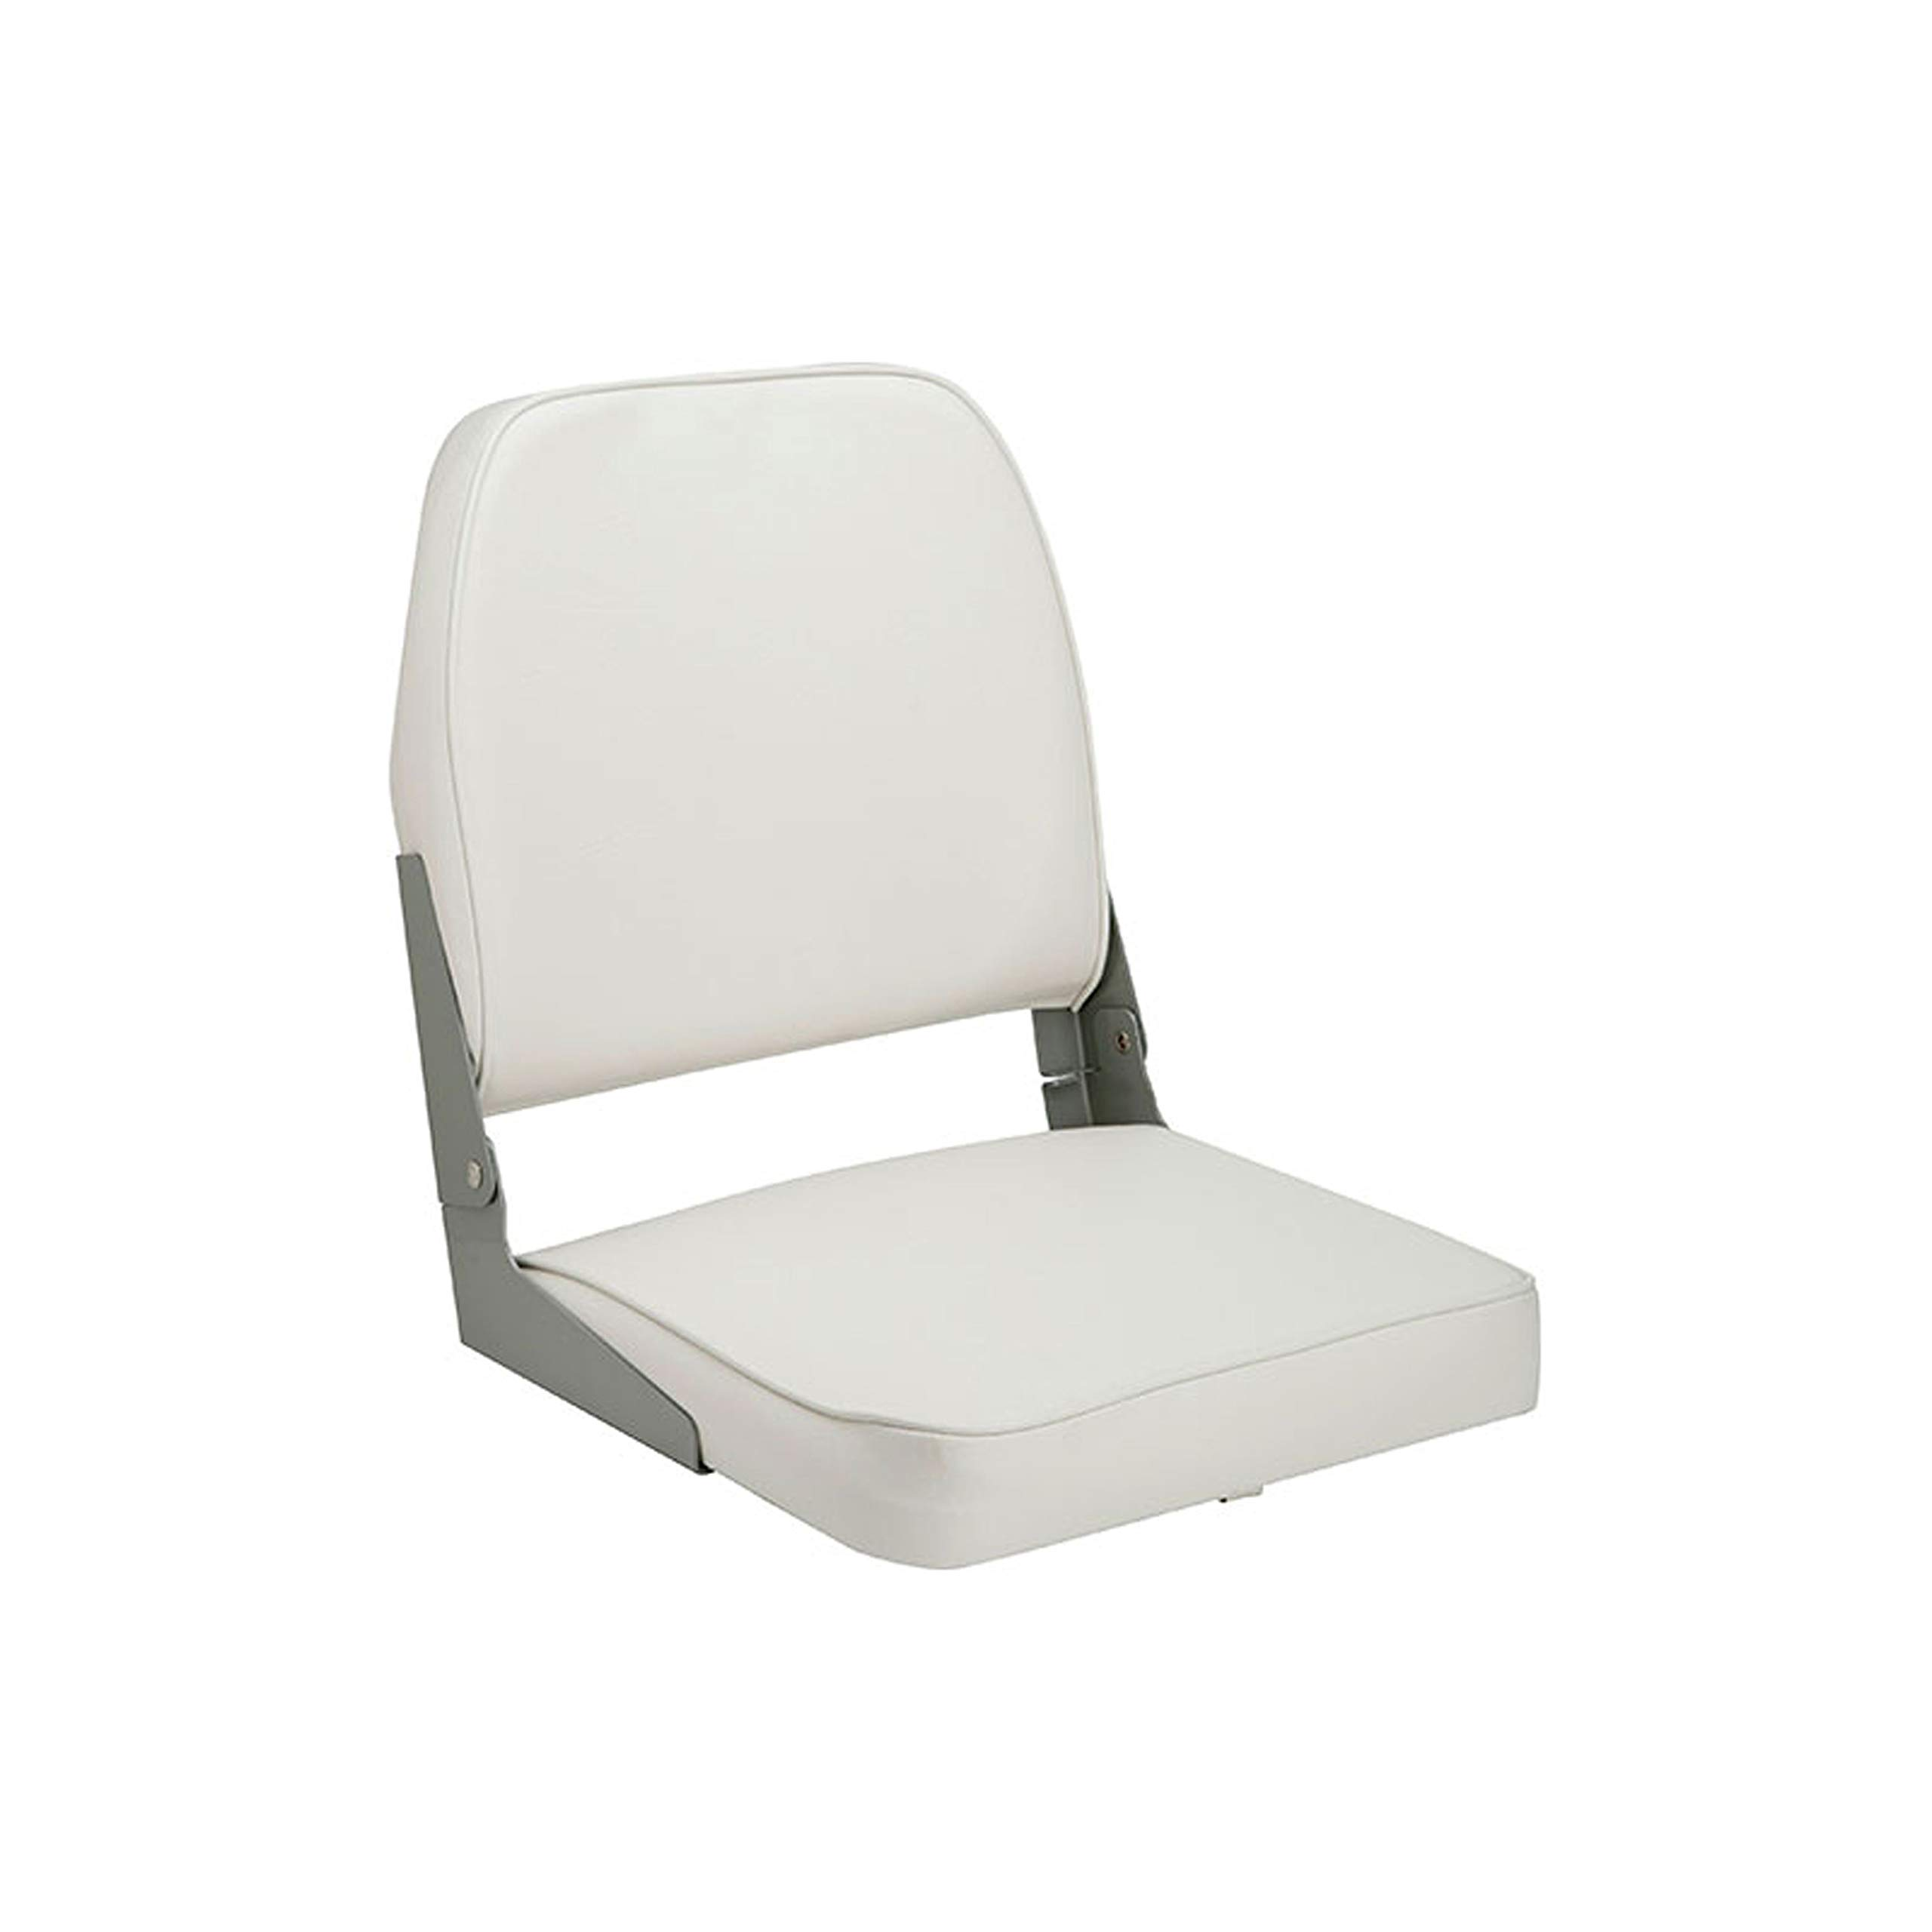 Attwood 98395WH Boat Seat, White by attwood